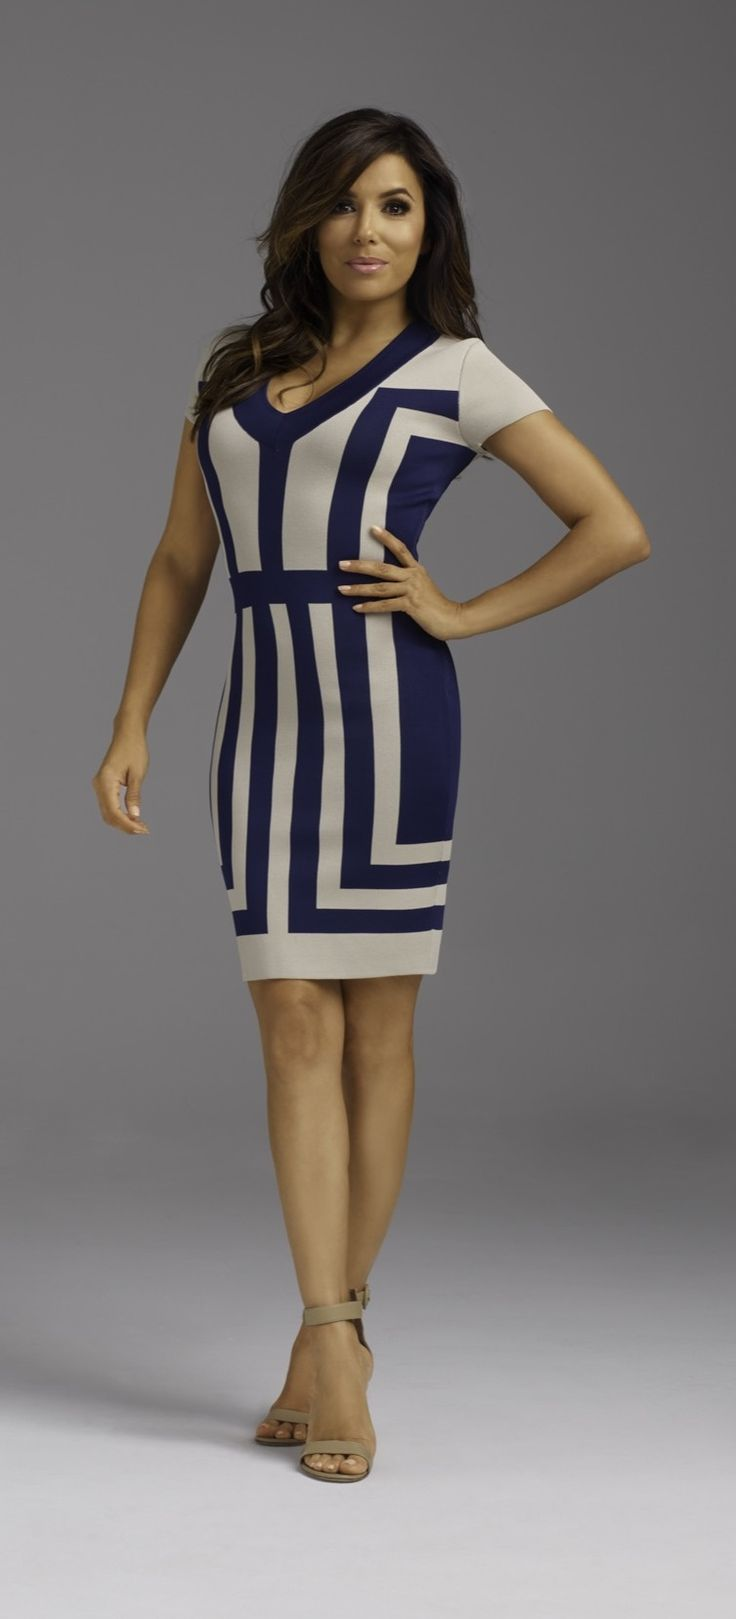 In Power Knit, this luxuriously rich fabric contours your curves for a flawless fit, and a look they'll never forget. With glamorous color blocked detail, this dress exclusively from the Eva Longoria collection is the ideal desk-to-dinner outfit.